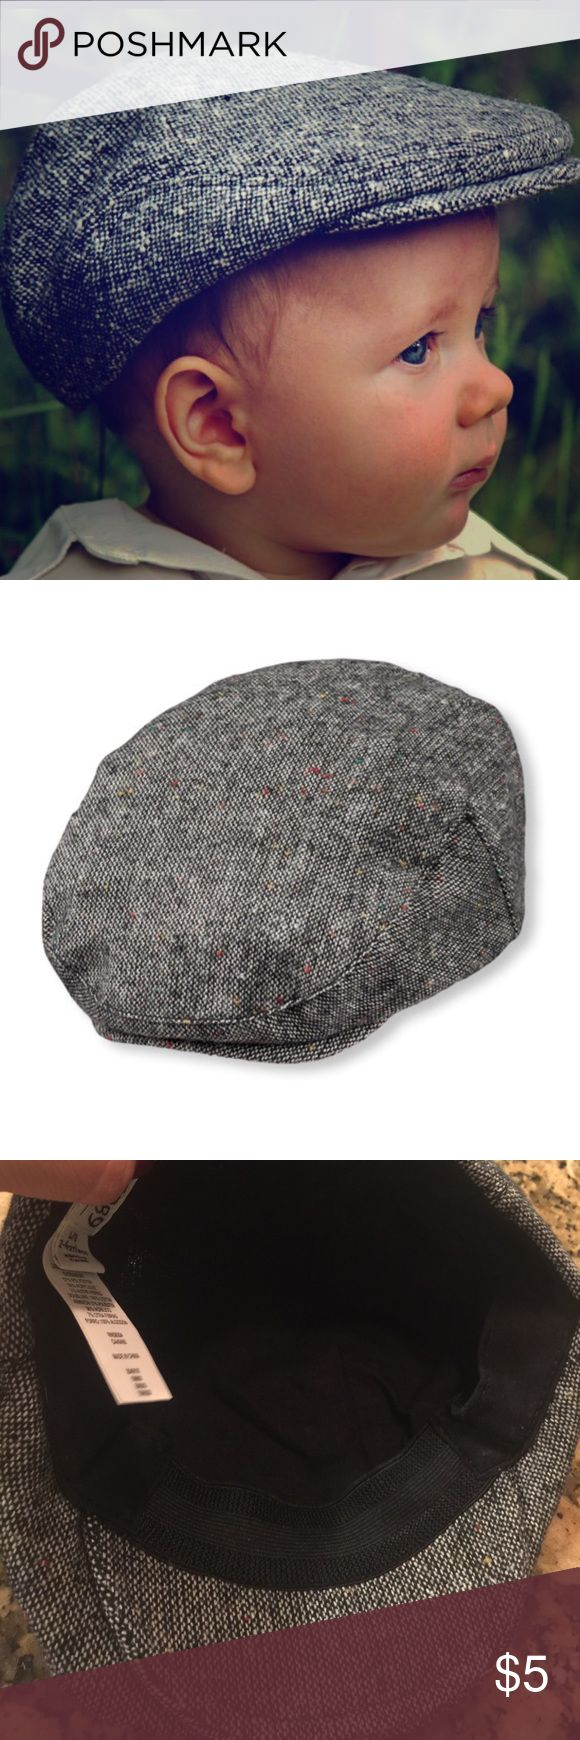 Tweed Newspaper Boy Hat Adorable Newspaper Boy Hat. Smoke/Pet free home                          Made of 100% polyester tweed Lining made of 95% polyester/5% polyester sh Children's Place Costumes Theater